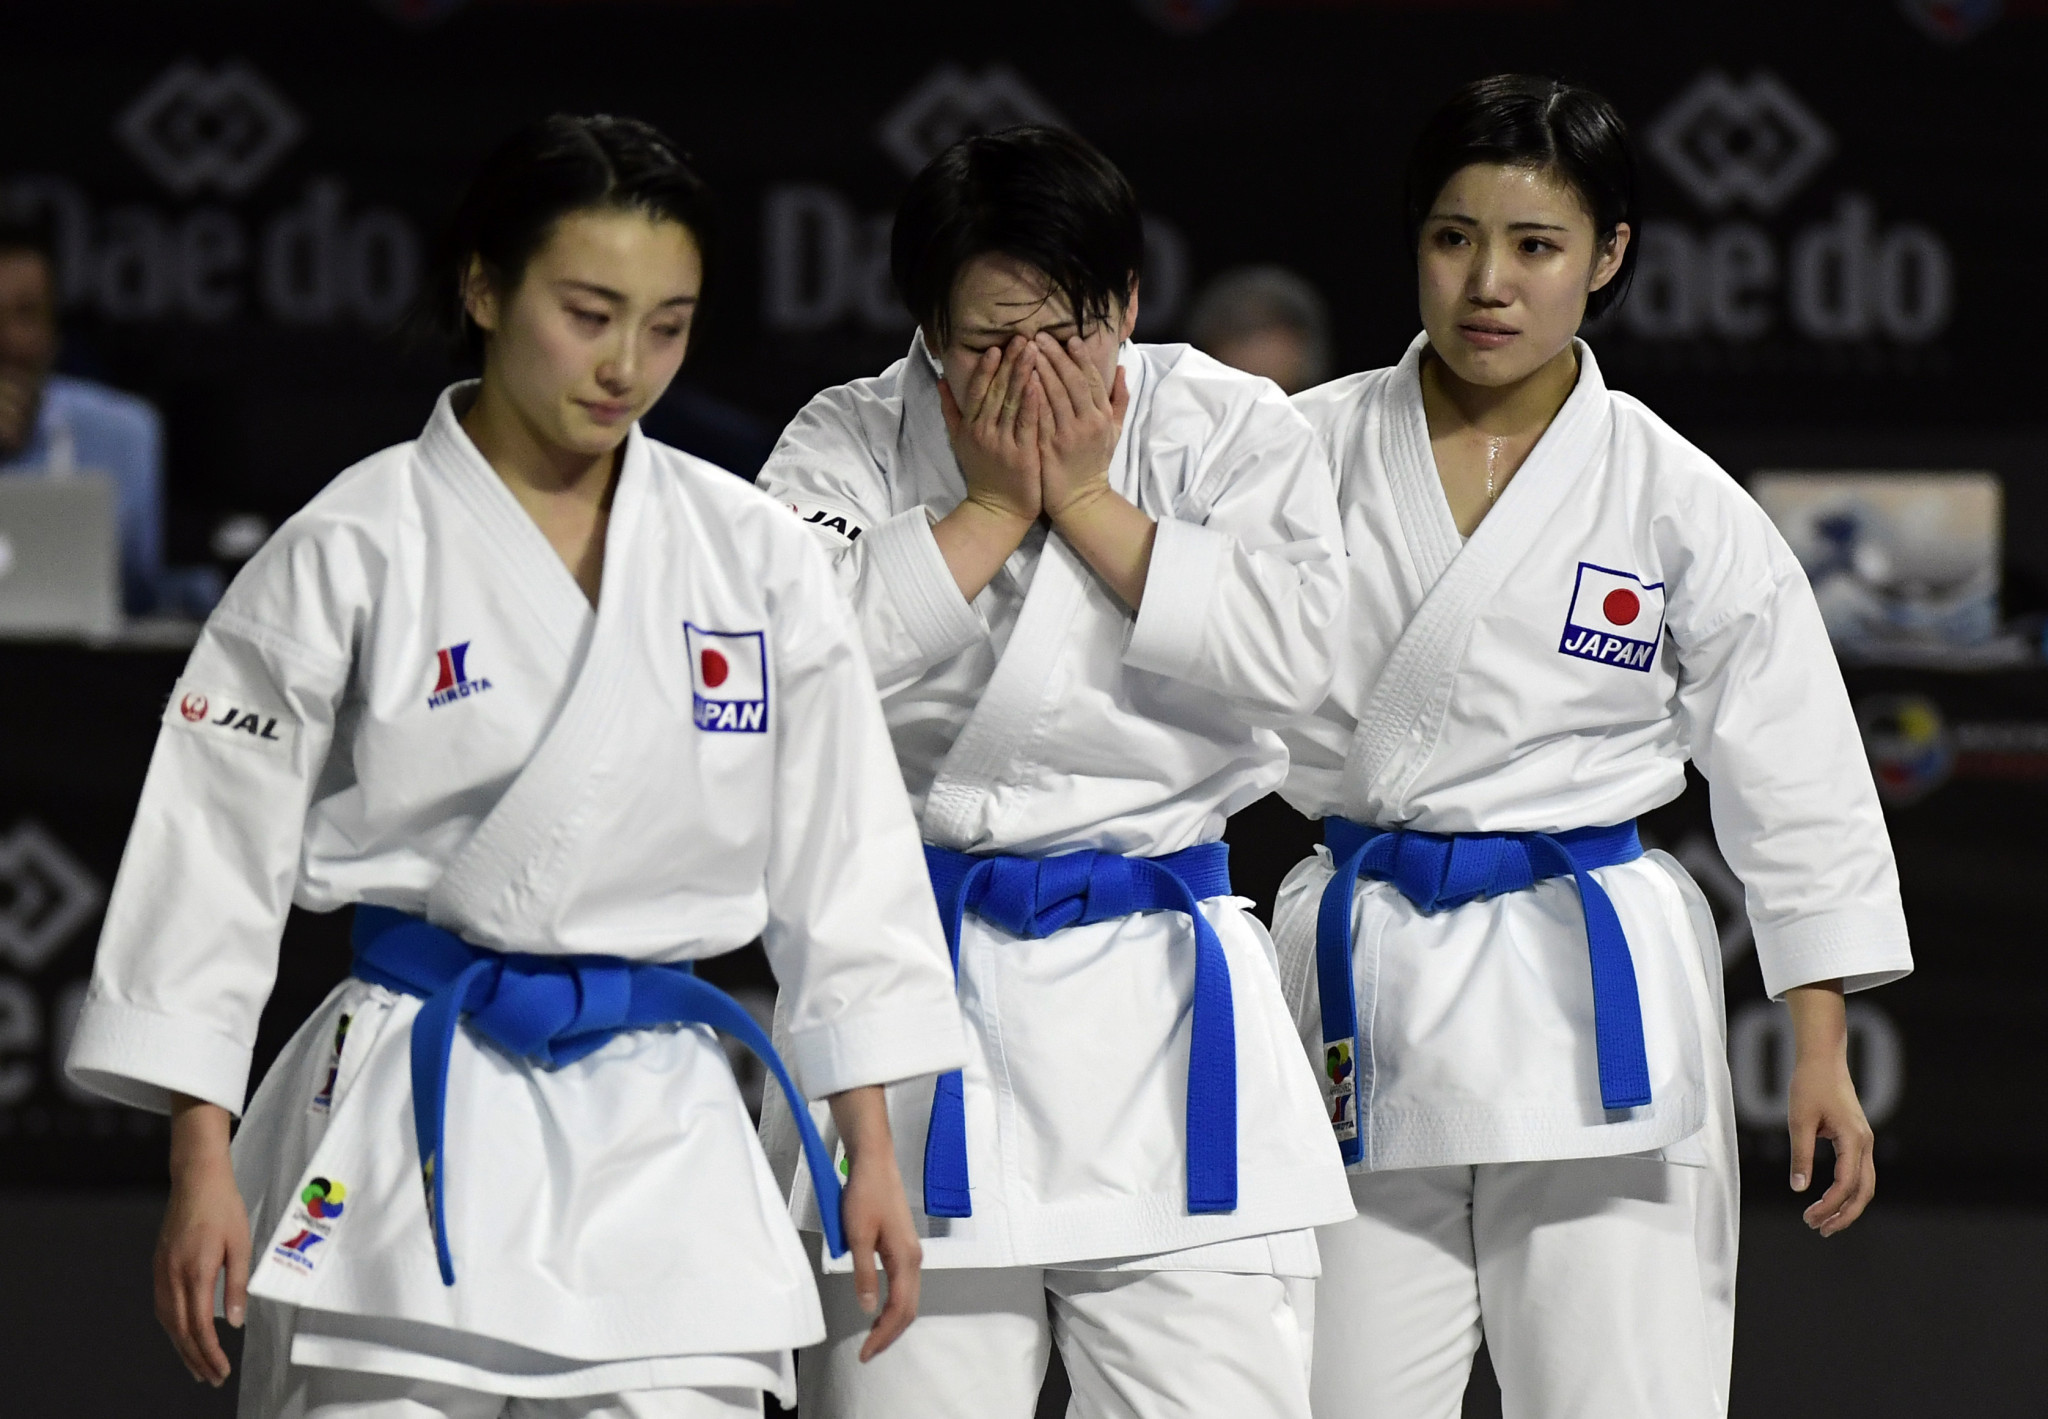 There were tears of joy from the Japanese team after they retained their title ©Getty Images